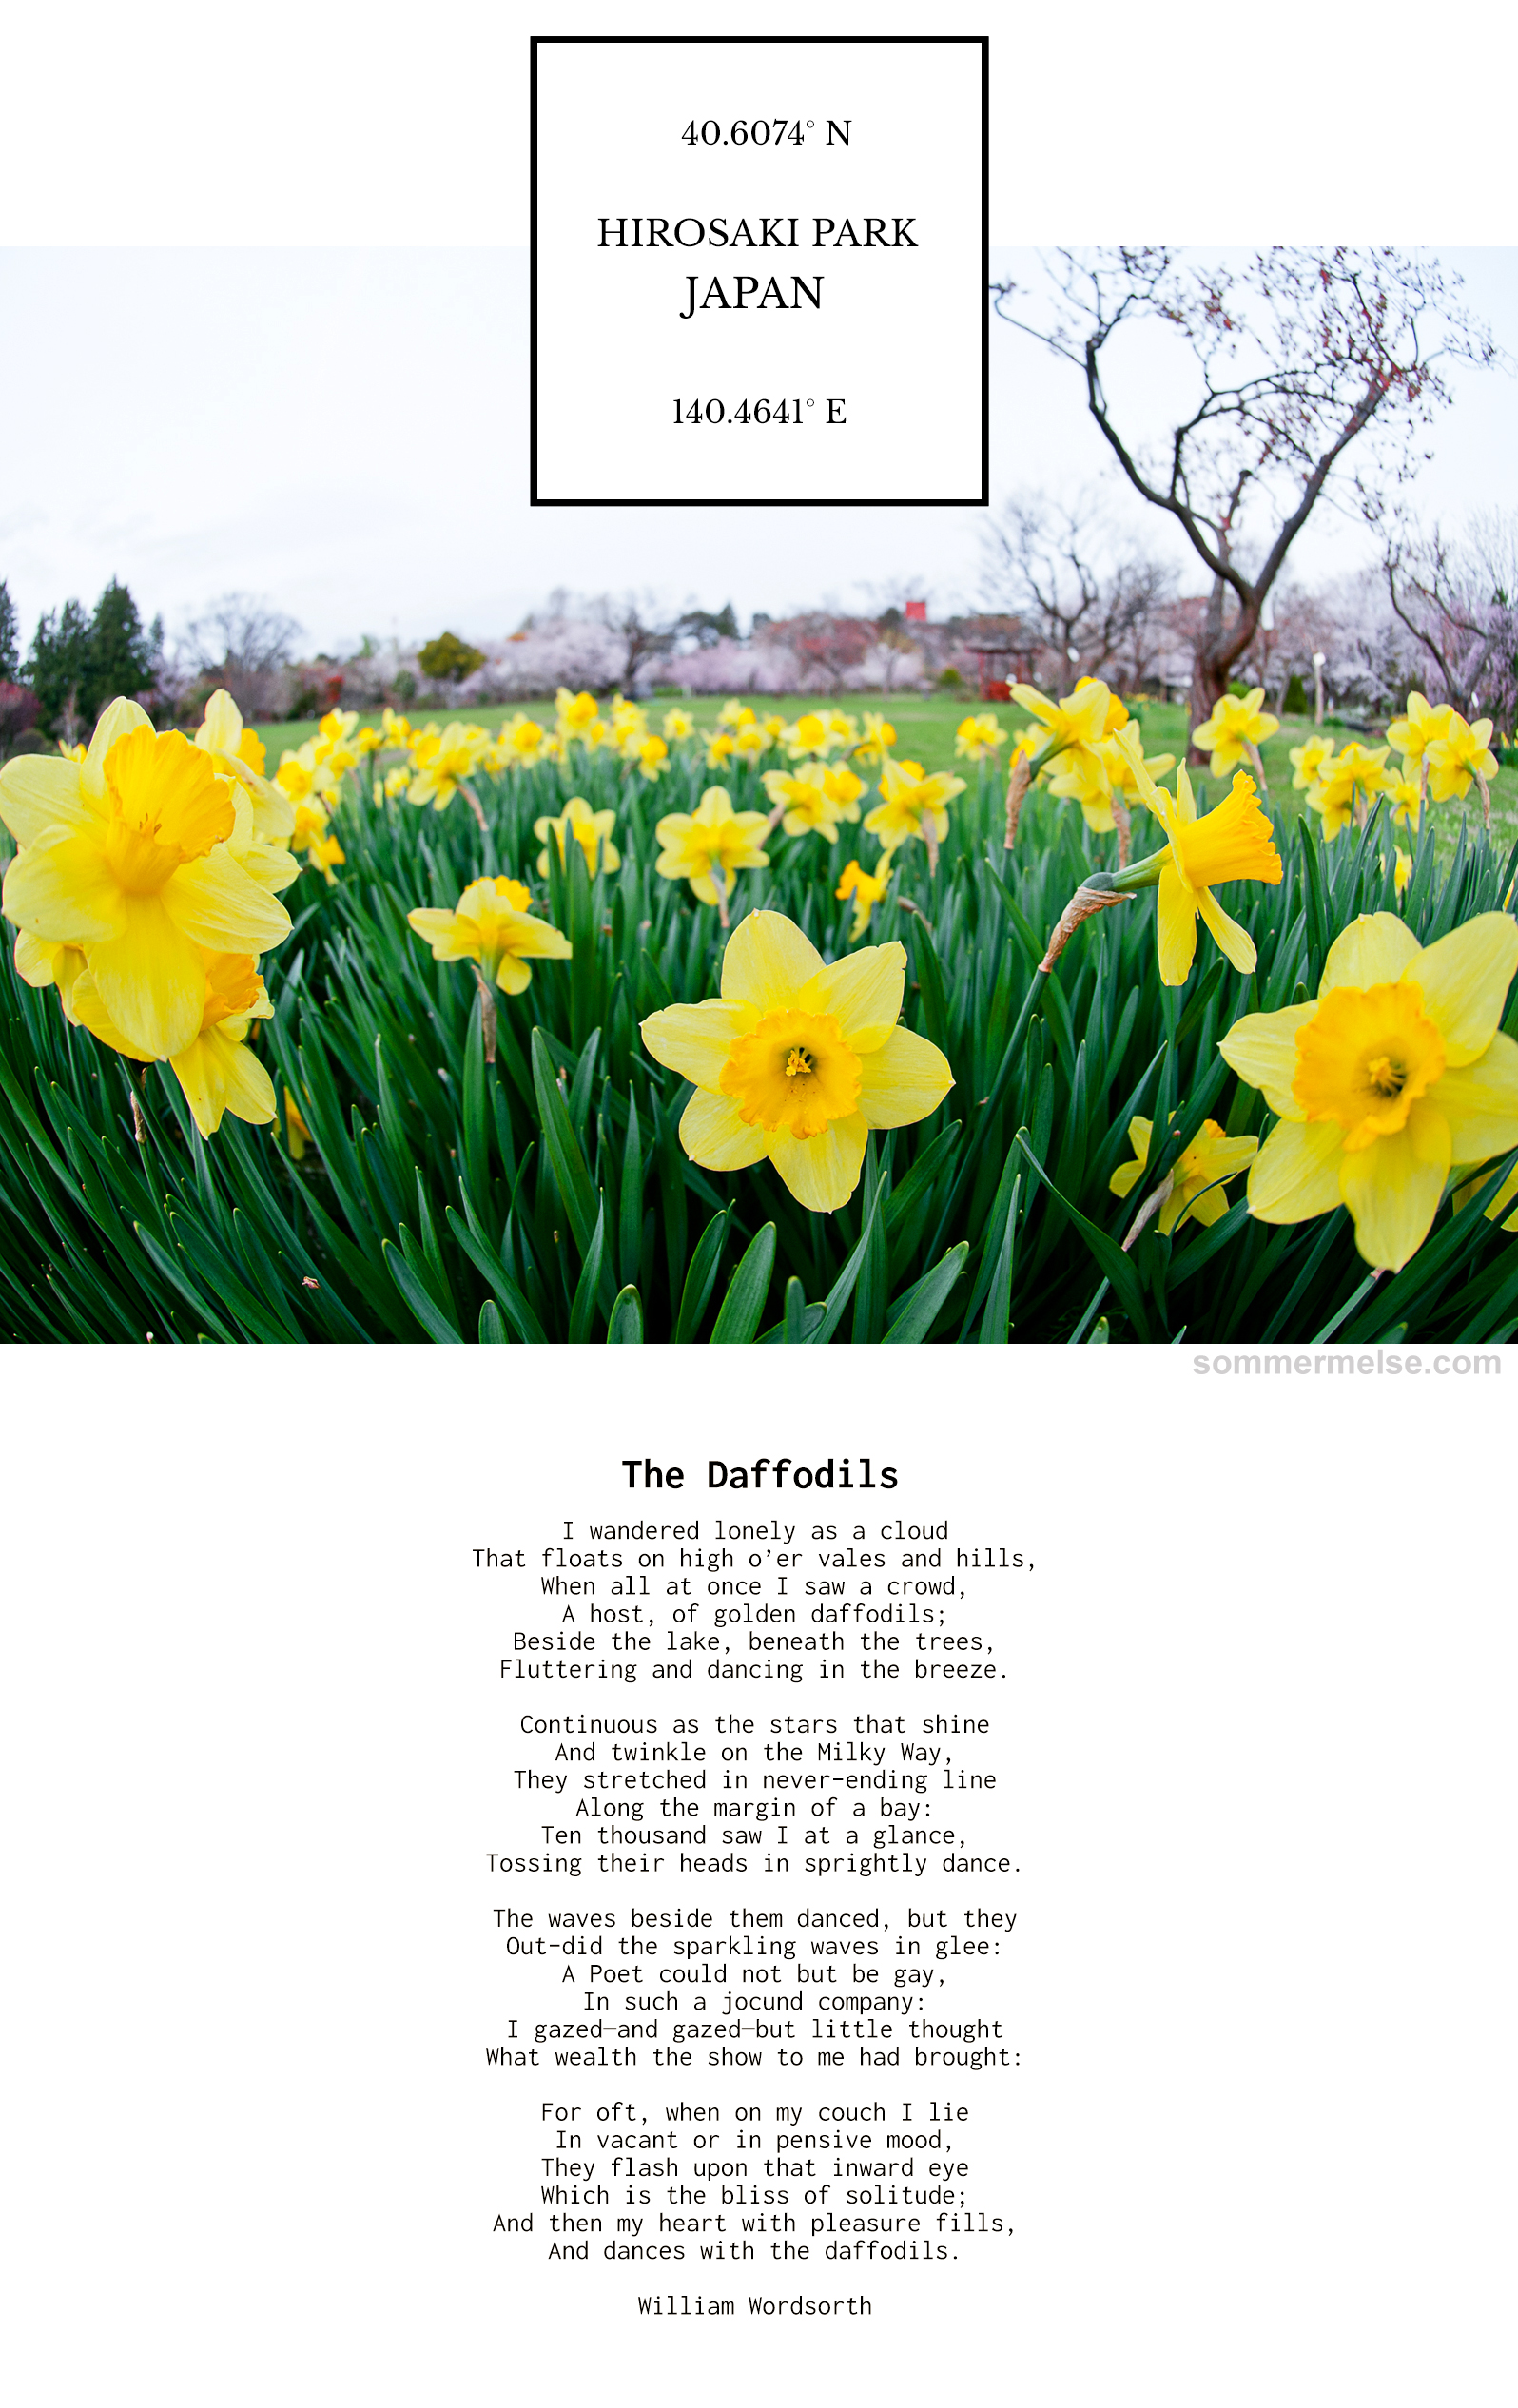 33_finding_wonder_the_daffodils_william_wordsworth